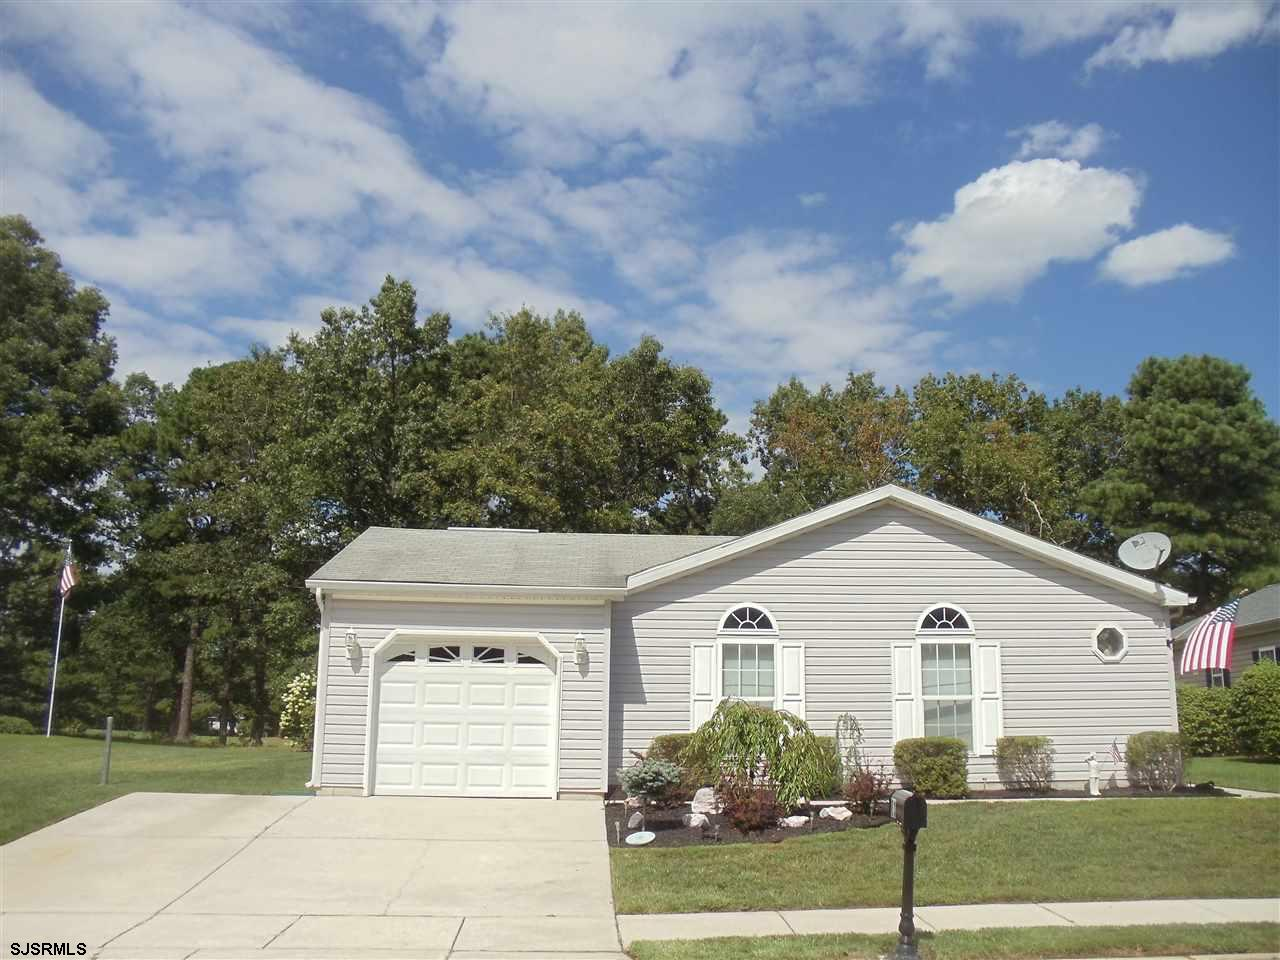 ABSOLUTELY MAGNIFICENT!! ST.ANDREWS MODEL,WITH 1 CAR ATTACHED GARAGE, ORIGINAL OWNERS WHO ADDED OVER $38,000 WORTH OF UPGRADES.OPEN FLOOR PLAN.NEWER APPLIANCES,KITCHEN FLR,LAUNDRY RM FLR. MASTER BEDROOM HAS CATHEDRAL CEILINGS AND PRIVATE BATH W/DOUBLE SINKS,TUB AND SEP. SHOWER. NEWER BEAUTIFUL GRANITE COUNTER TOPS IN KIT.MARBLE GAS F/P IN L/R.HUGE LAUNDRY ROOM W/CABINETS AND SINK. FABULOUS HUGE PATIO WITH FIRE PIT AND NEWER AWNING. AWESOME VIEW LOCATED ON THE GOLF COURSE. EASY TO SHOW AND SELL, SHOWS LIKE A MODEL HOME!! THE FAIRWAYS 55+COMMUNITY,WITH BEAUTIFUL AMENITIES  CLUBHOUSE,INDOOR POOL,LIBRARY,GYM